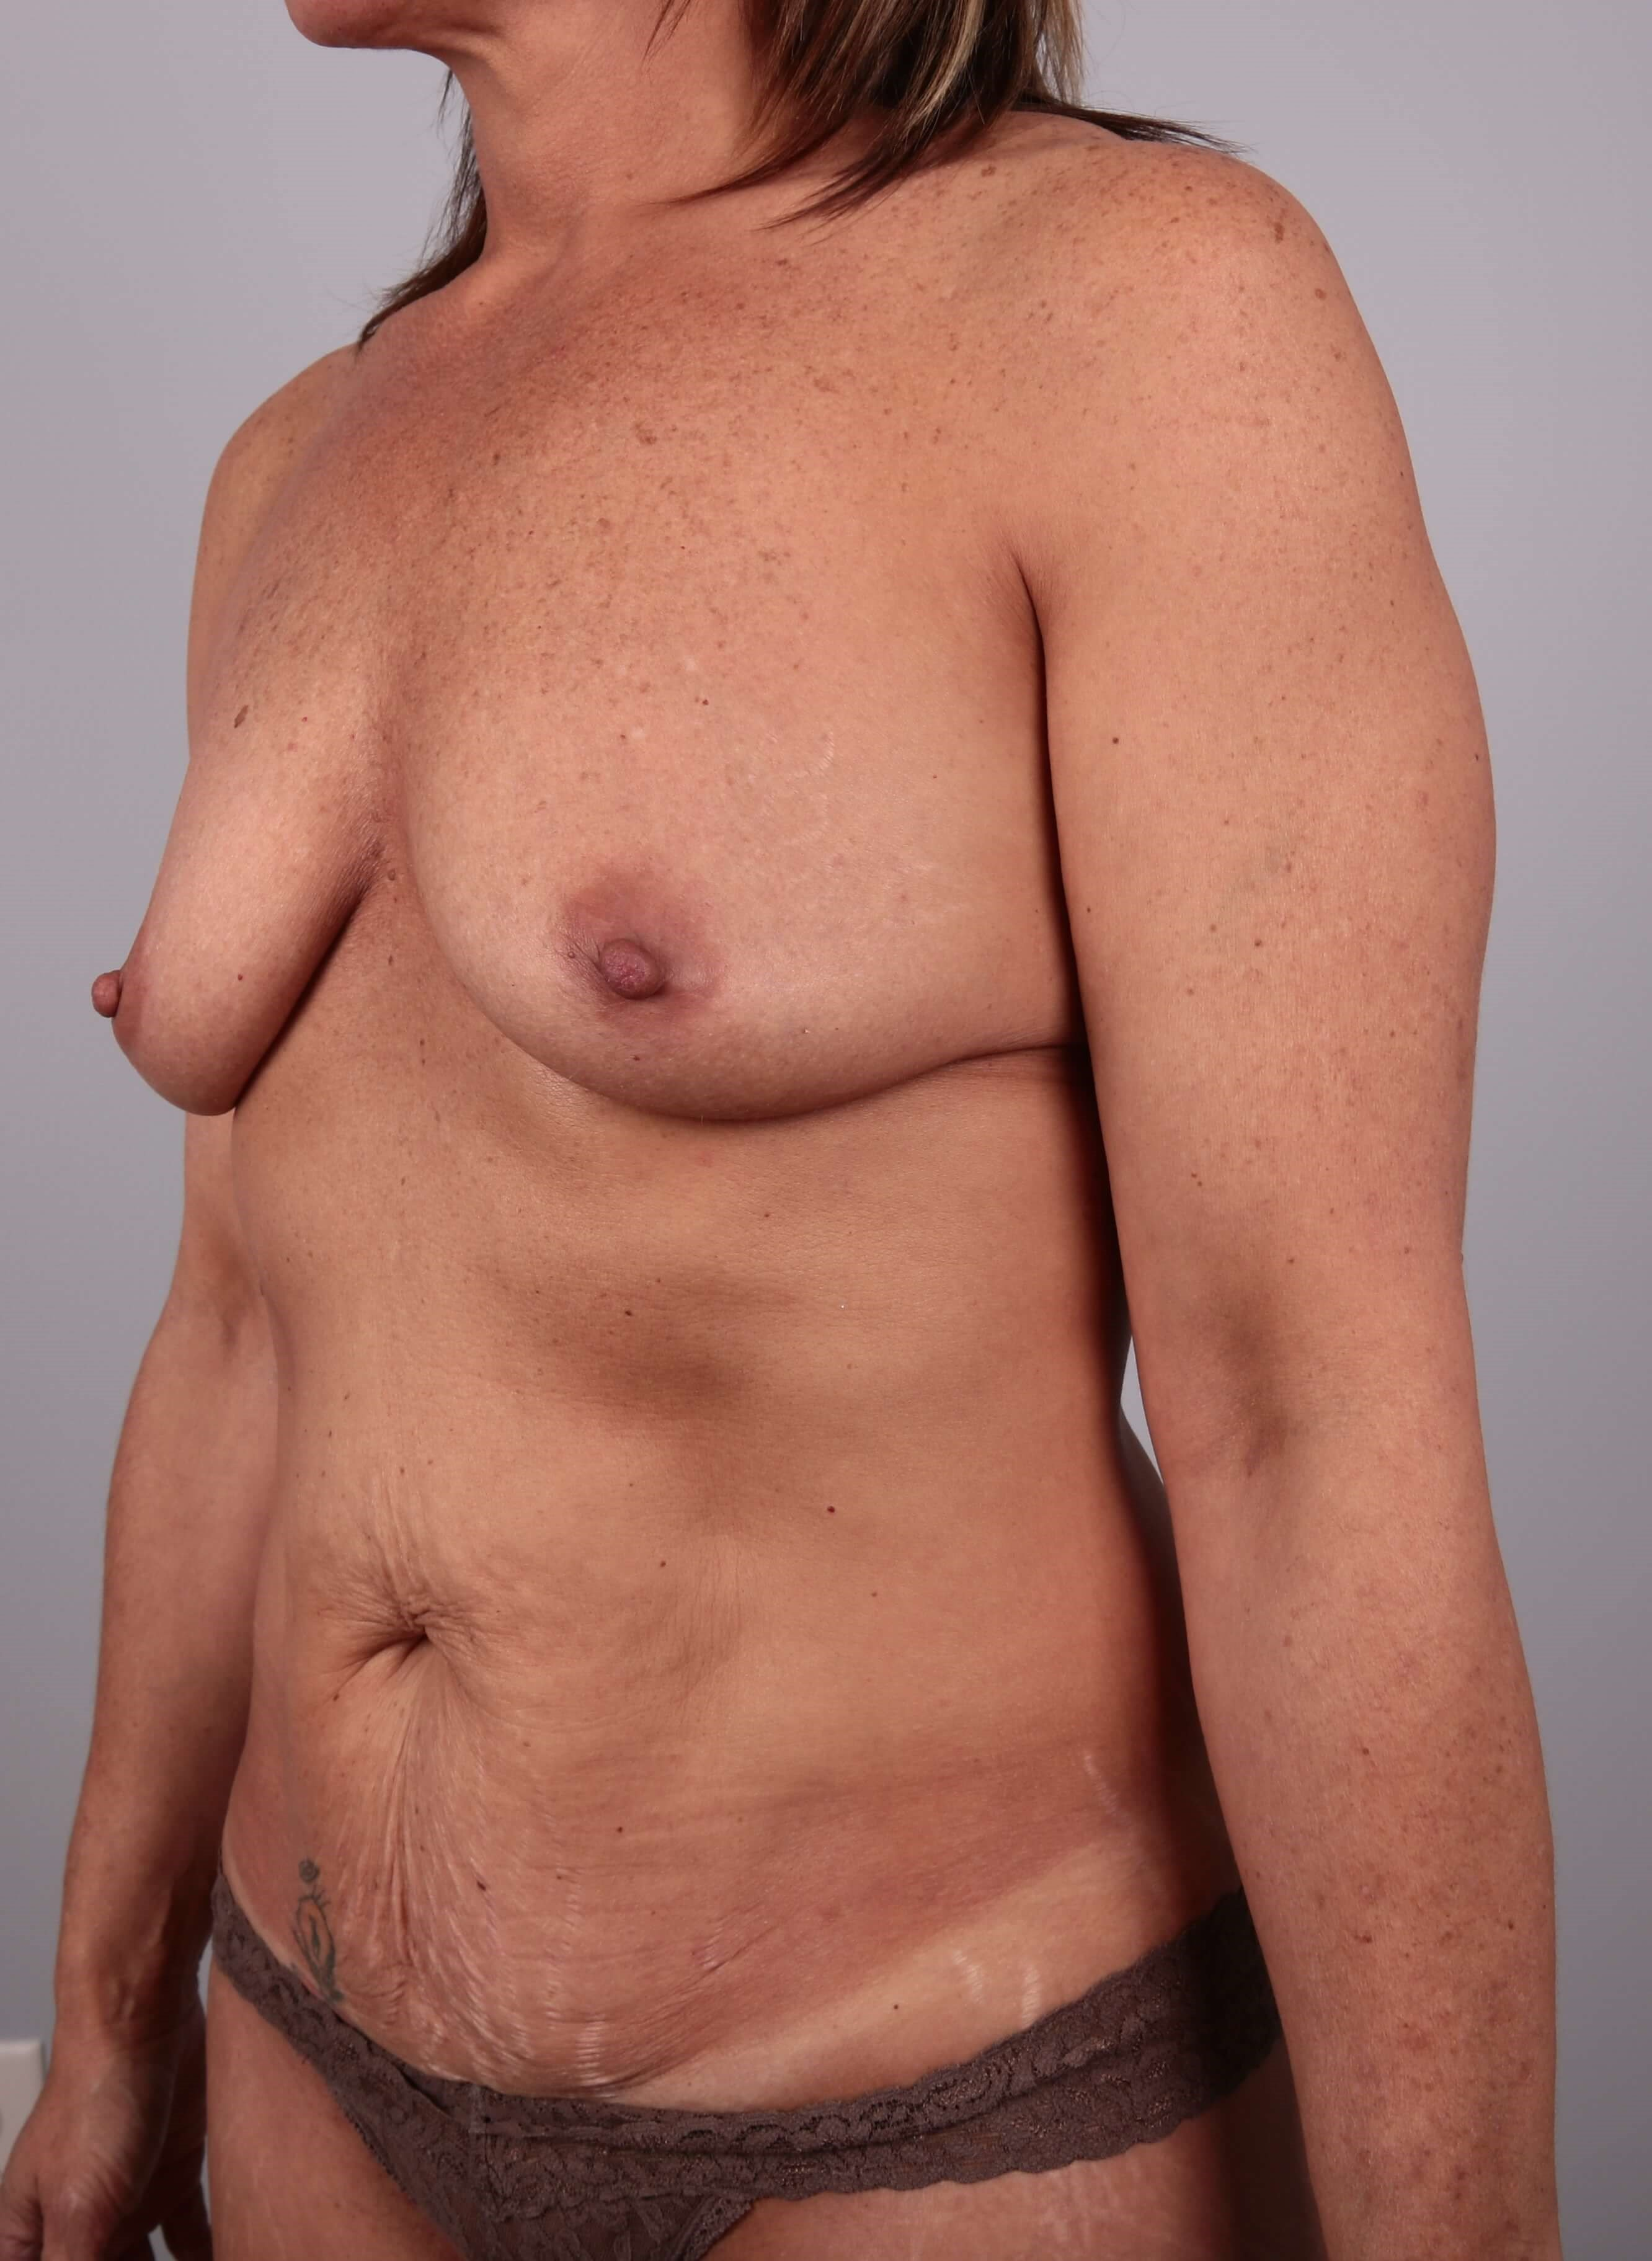 tummy tuck - mommy makeover Before